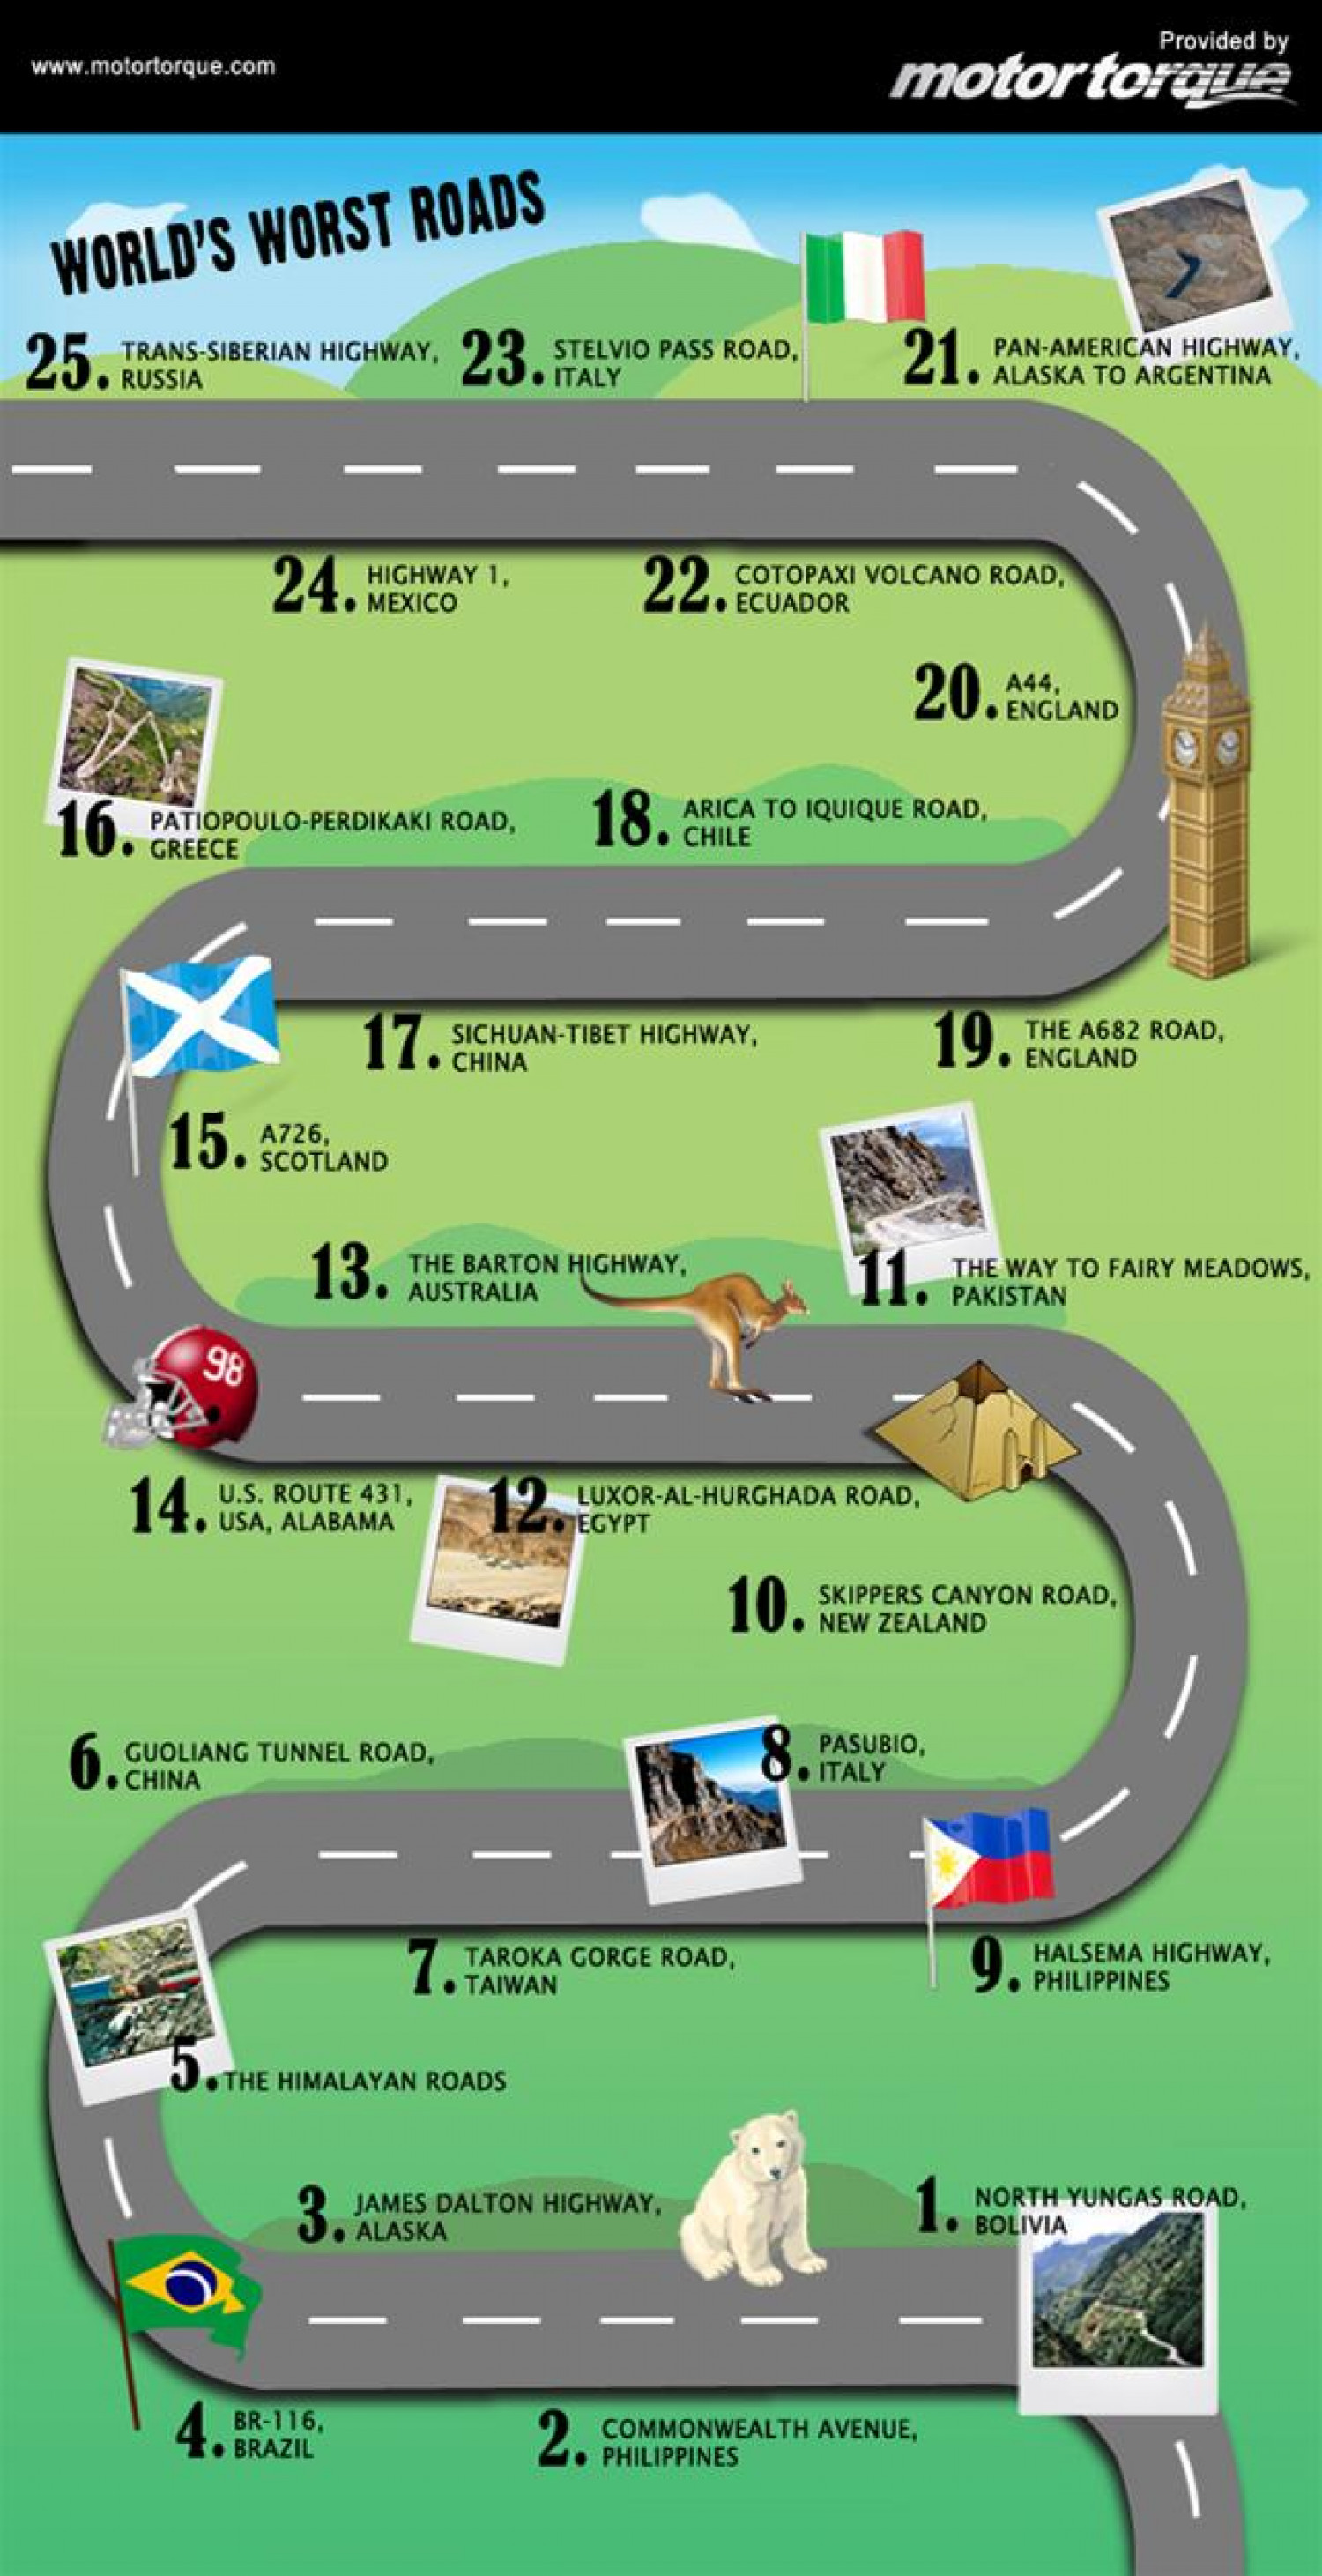 The worlds worst roads! Infographic